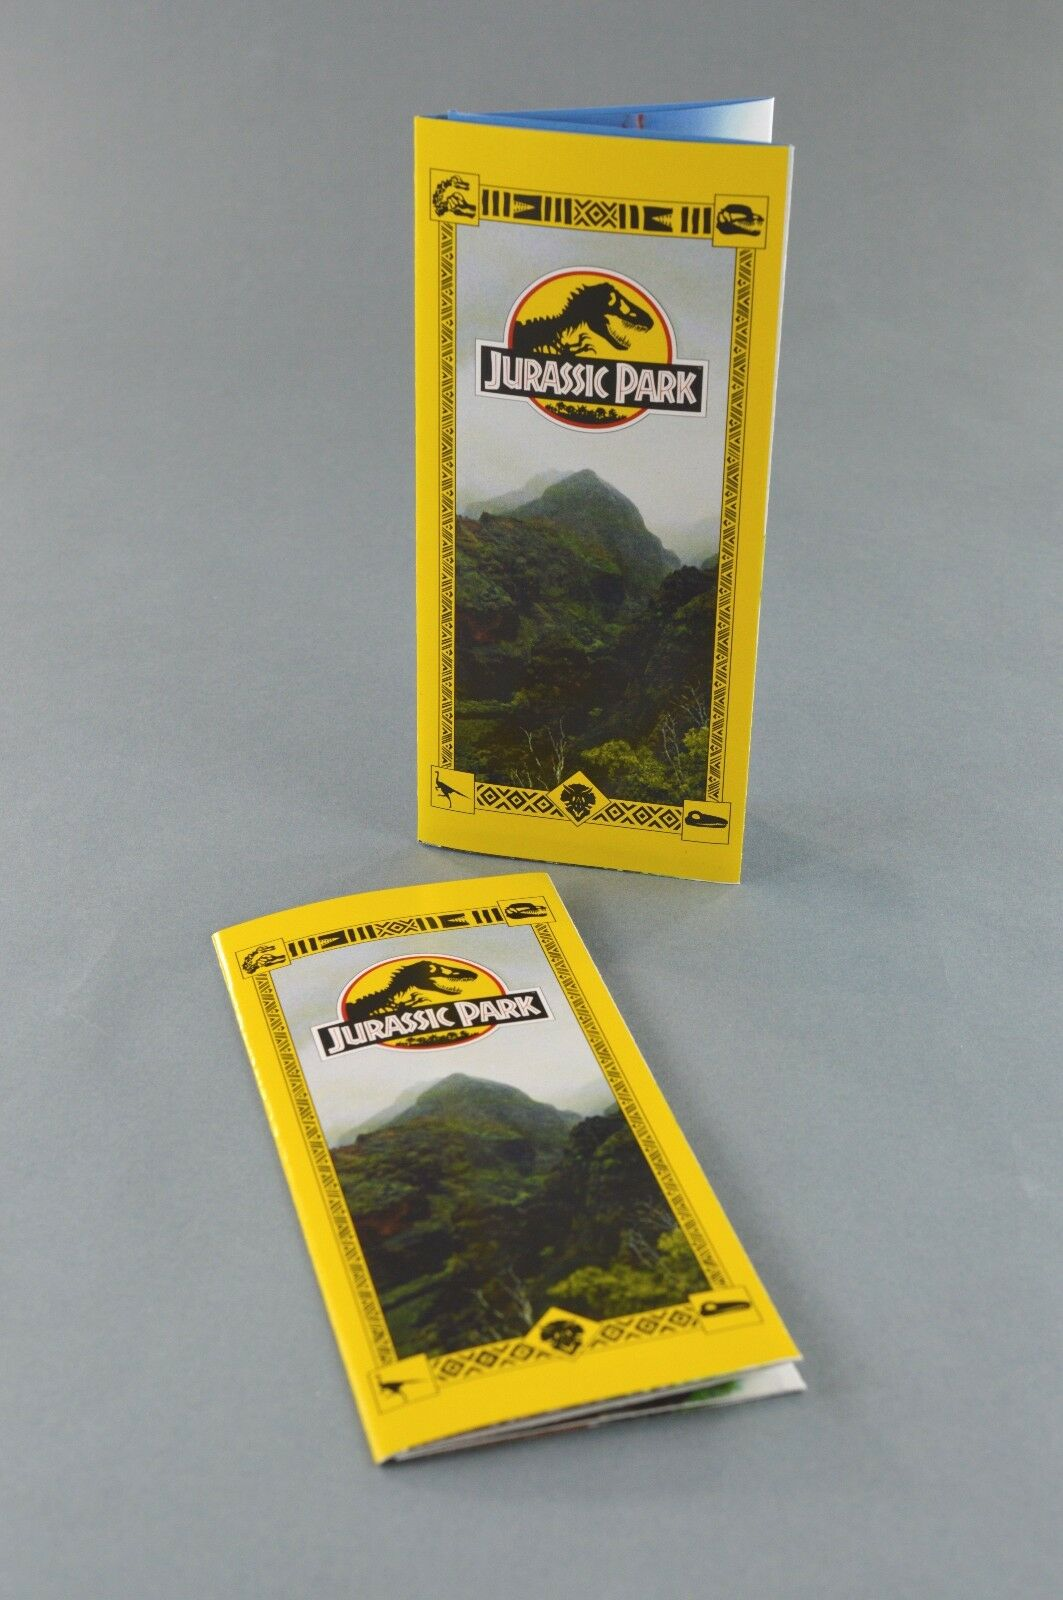 Jurassic Park Tour Brochure Guide Pamphlet x2 Prop Replica Screen Accurate New